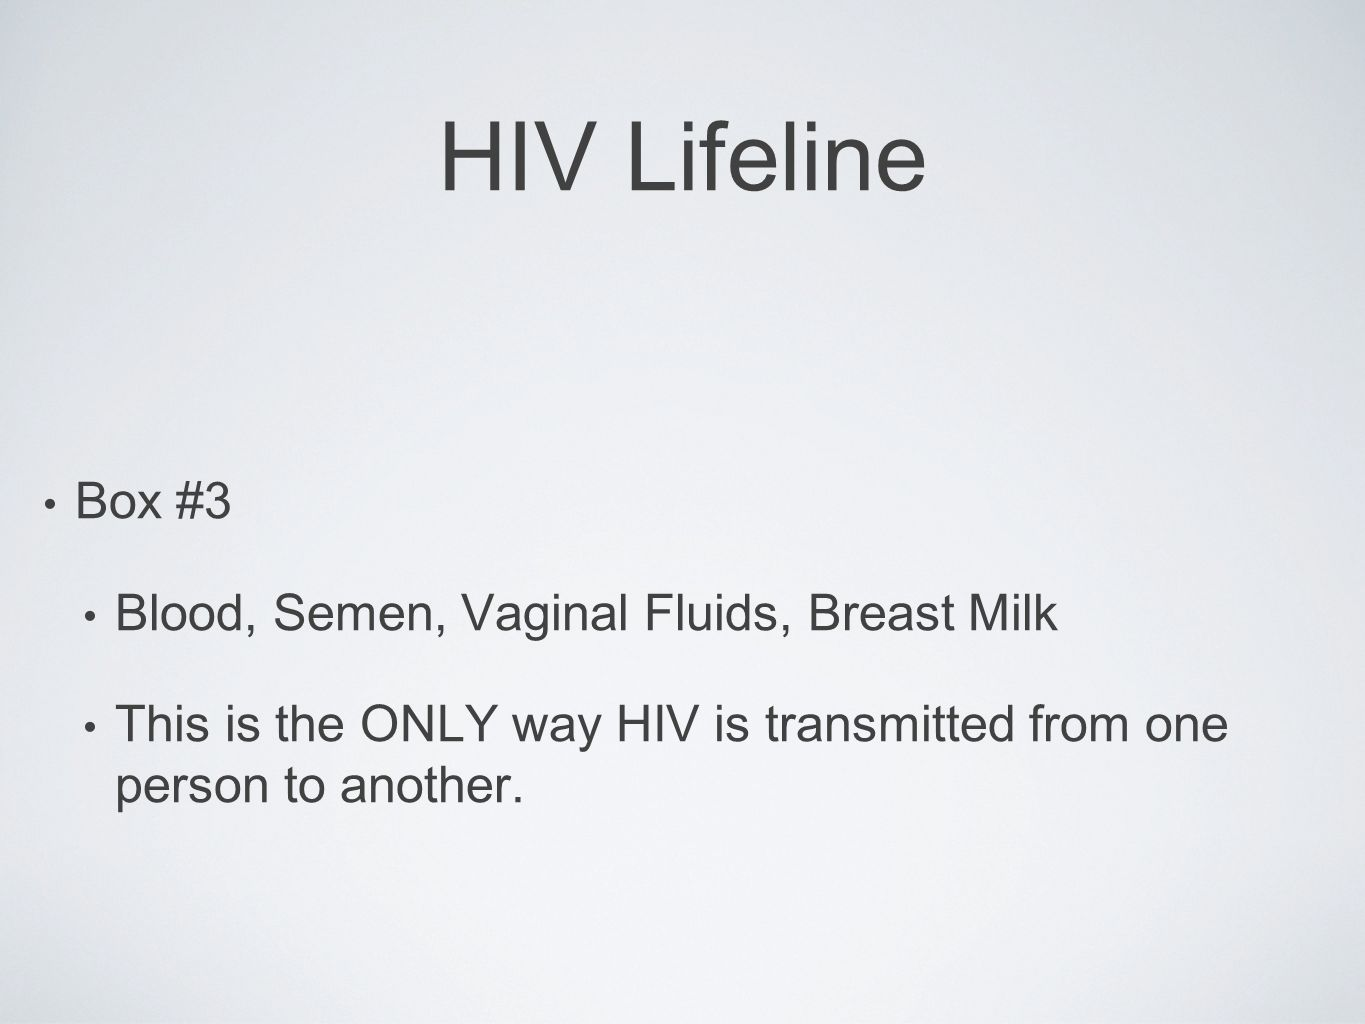 HIV Lifeline Box #3 Blood, Semen, Vaginal Fluids, Breast Milk